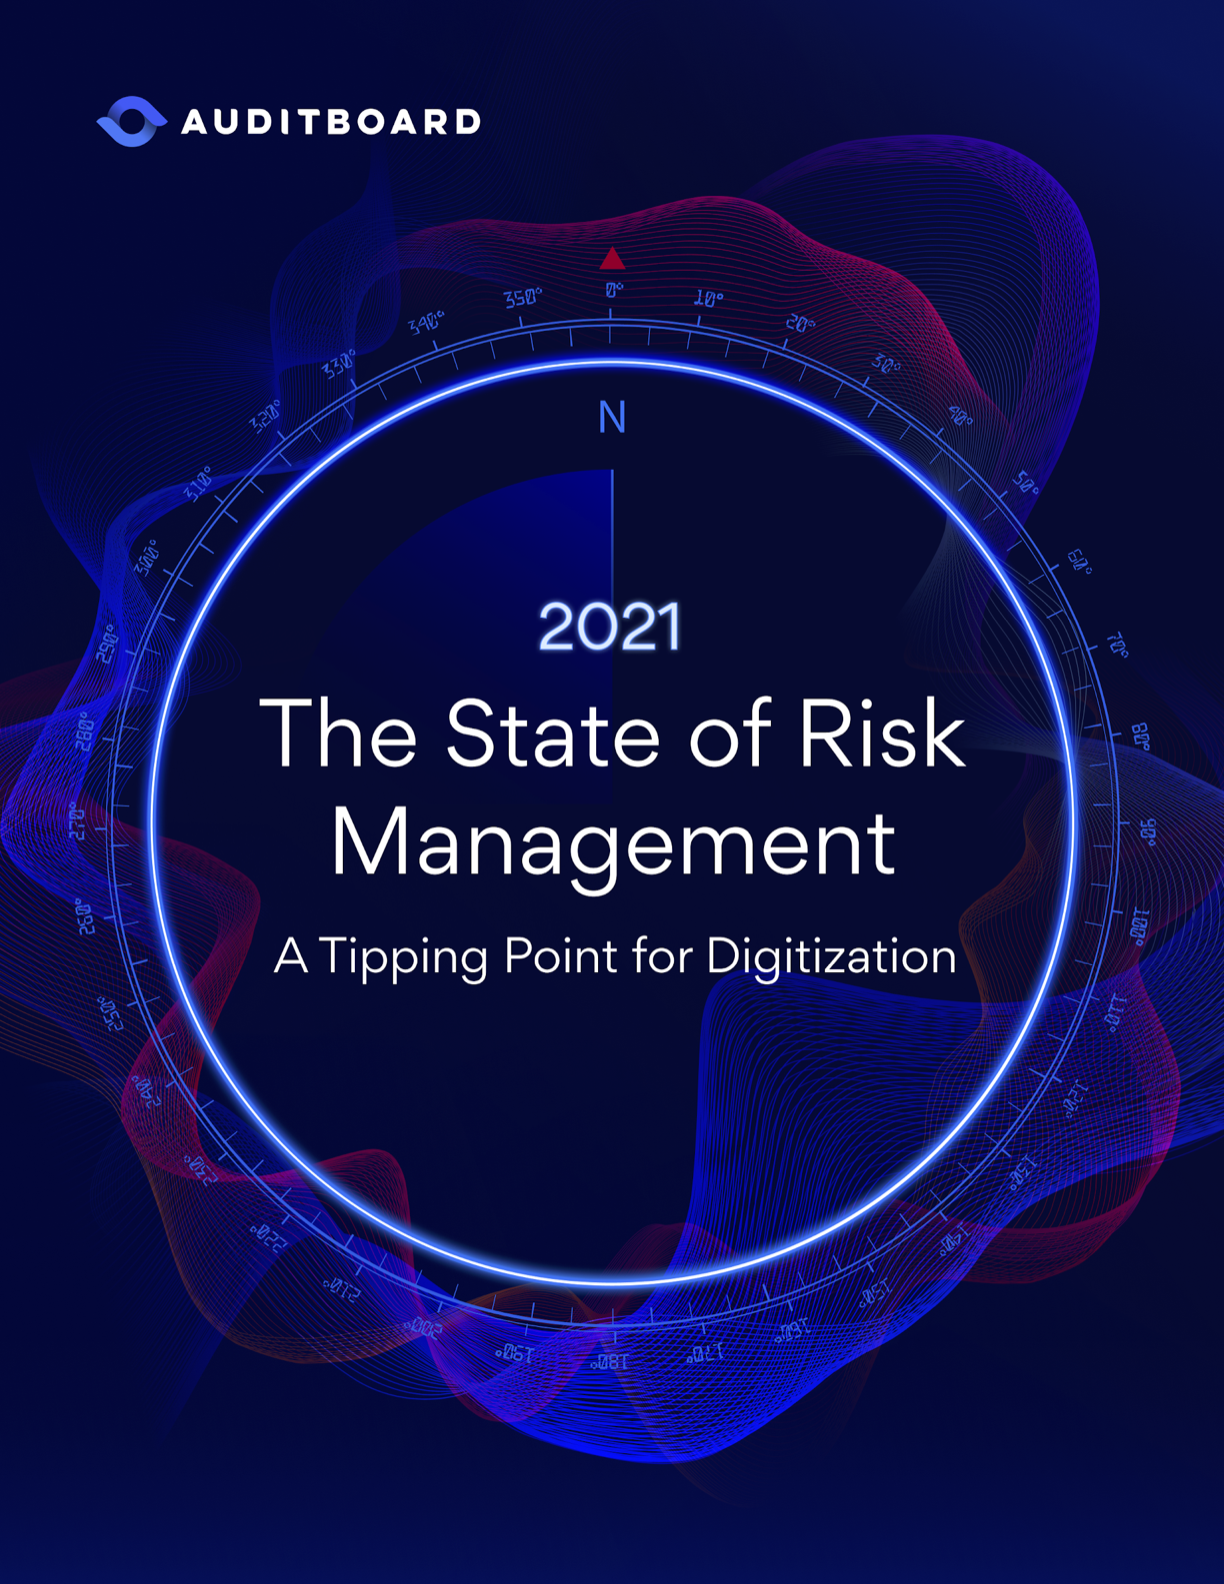 The State of Risk Management: A Tipping Point for Digitization